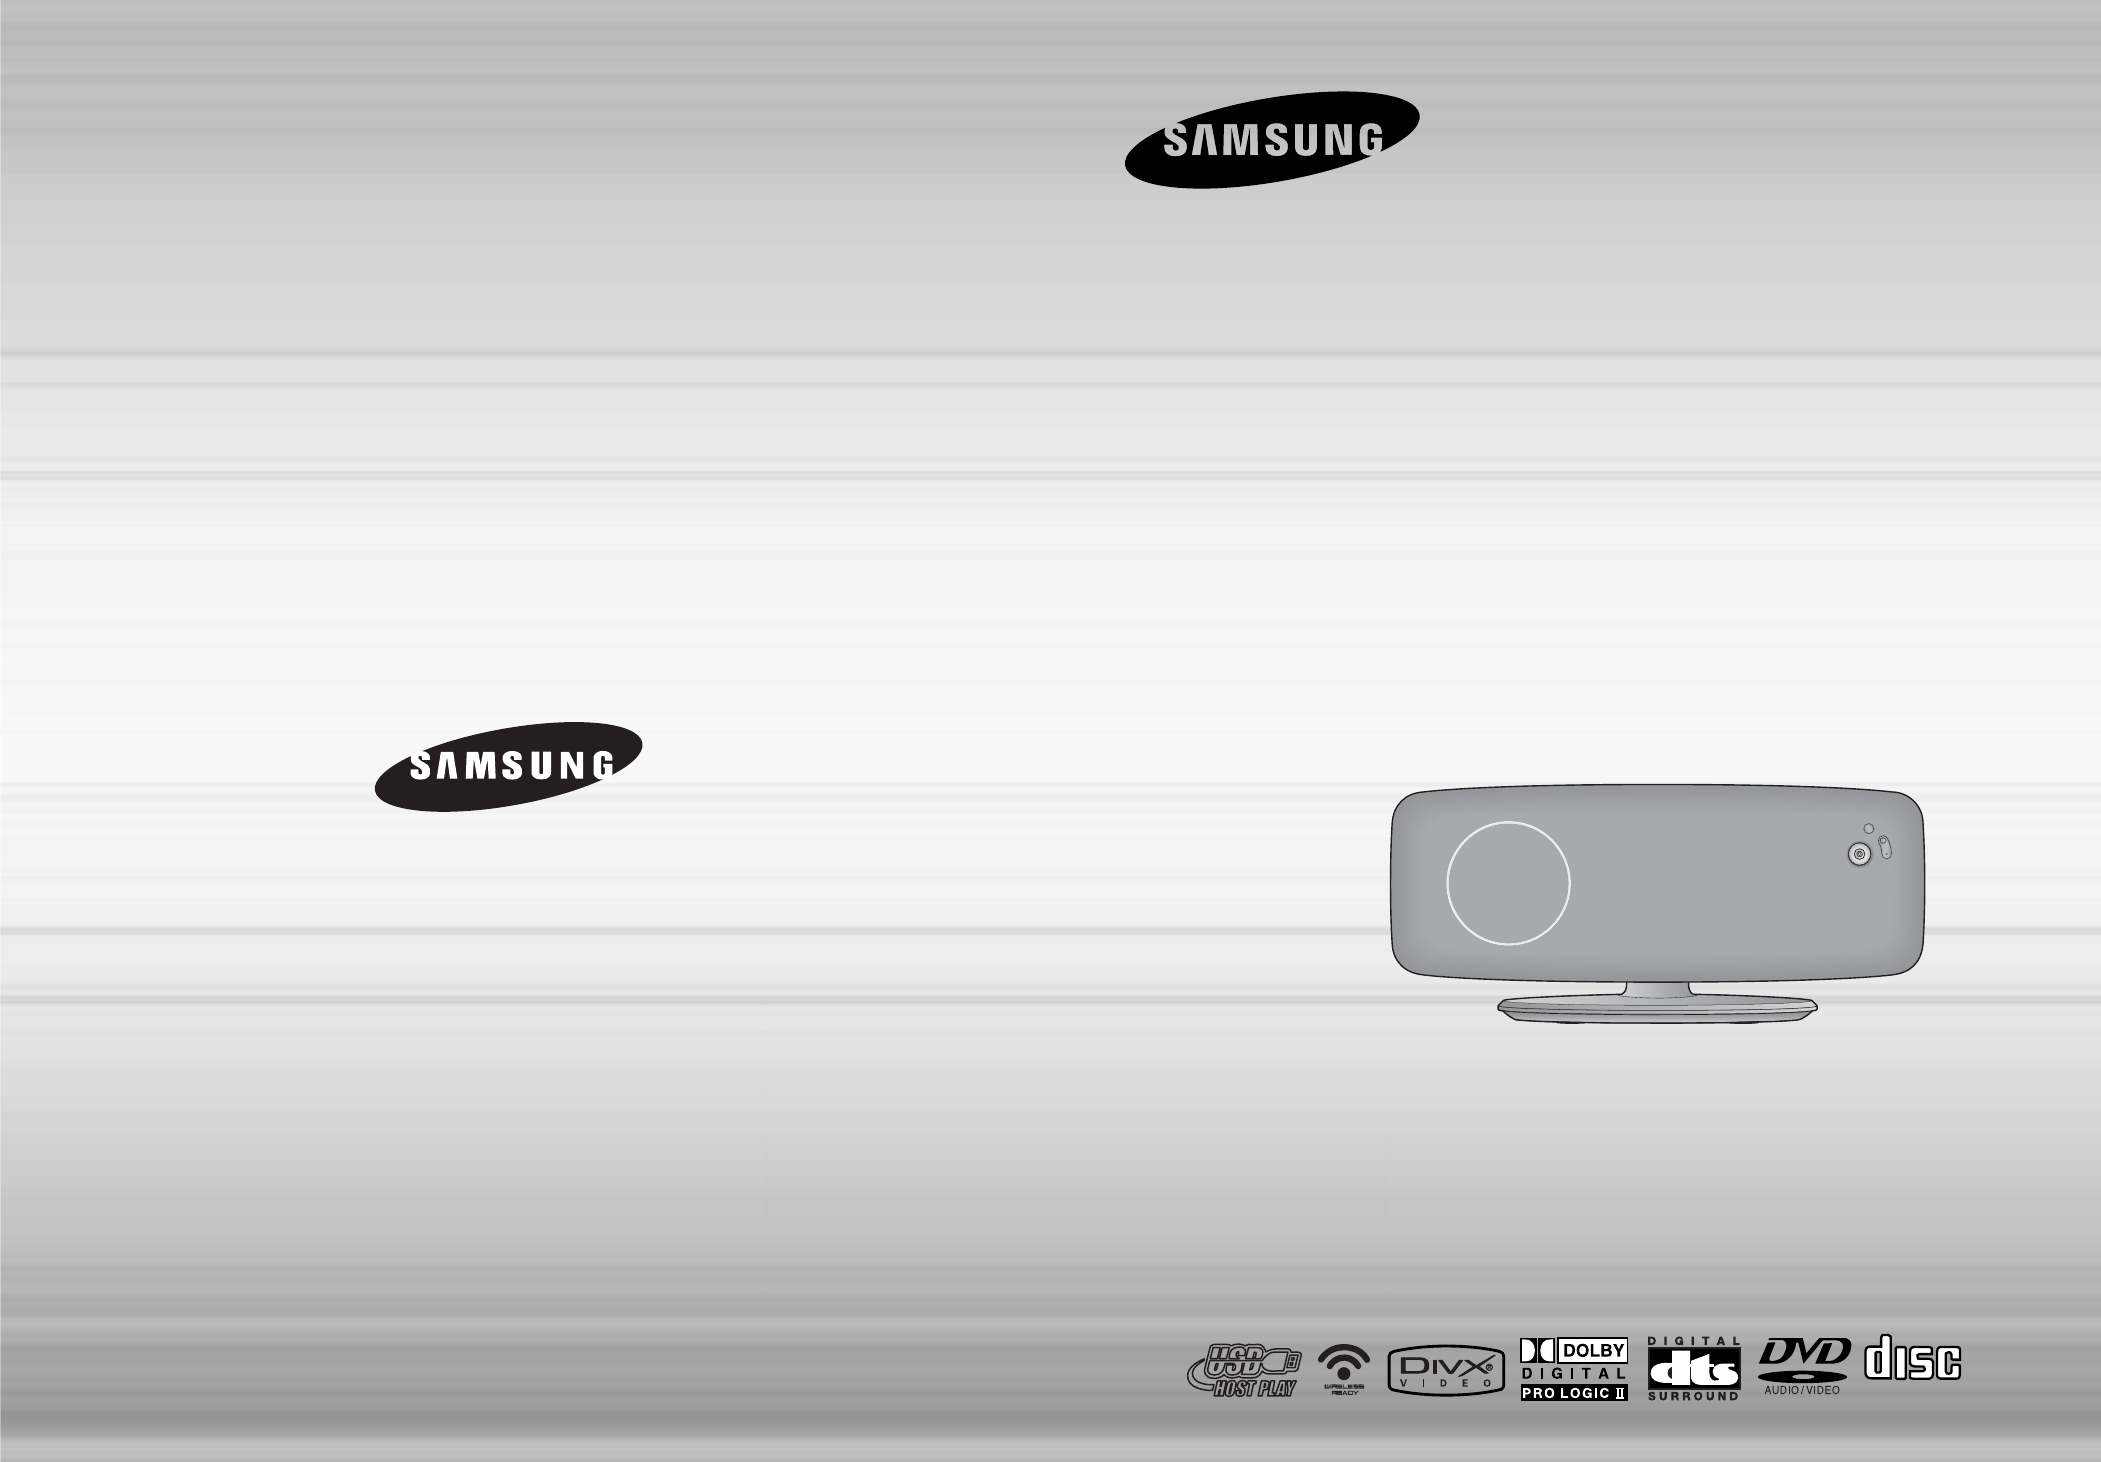 samsung home theater system ah68 01852b user guide manualsonline com rh audio manualsonline com samsung ht-j4500 home theater system manual samsung ht-j4500 home theater system manual